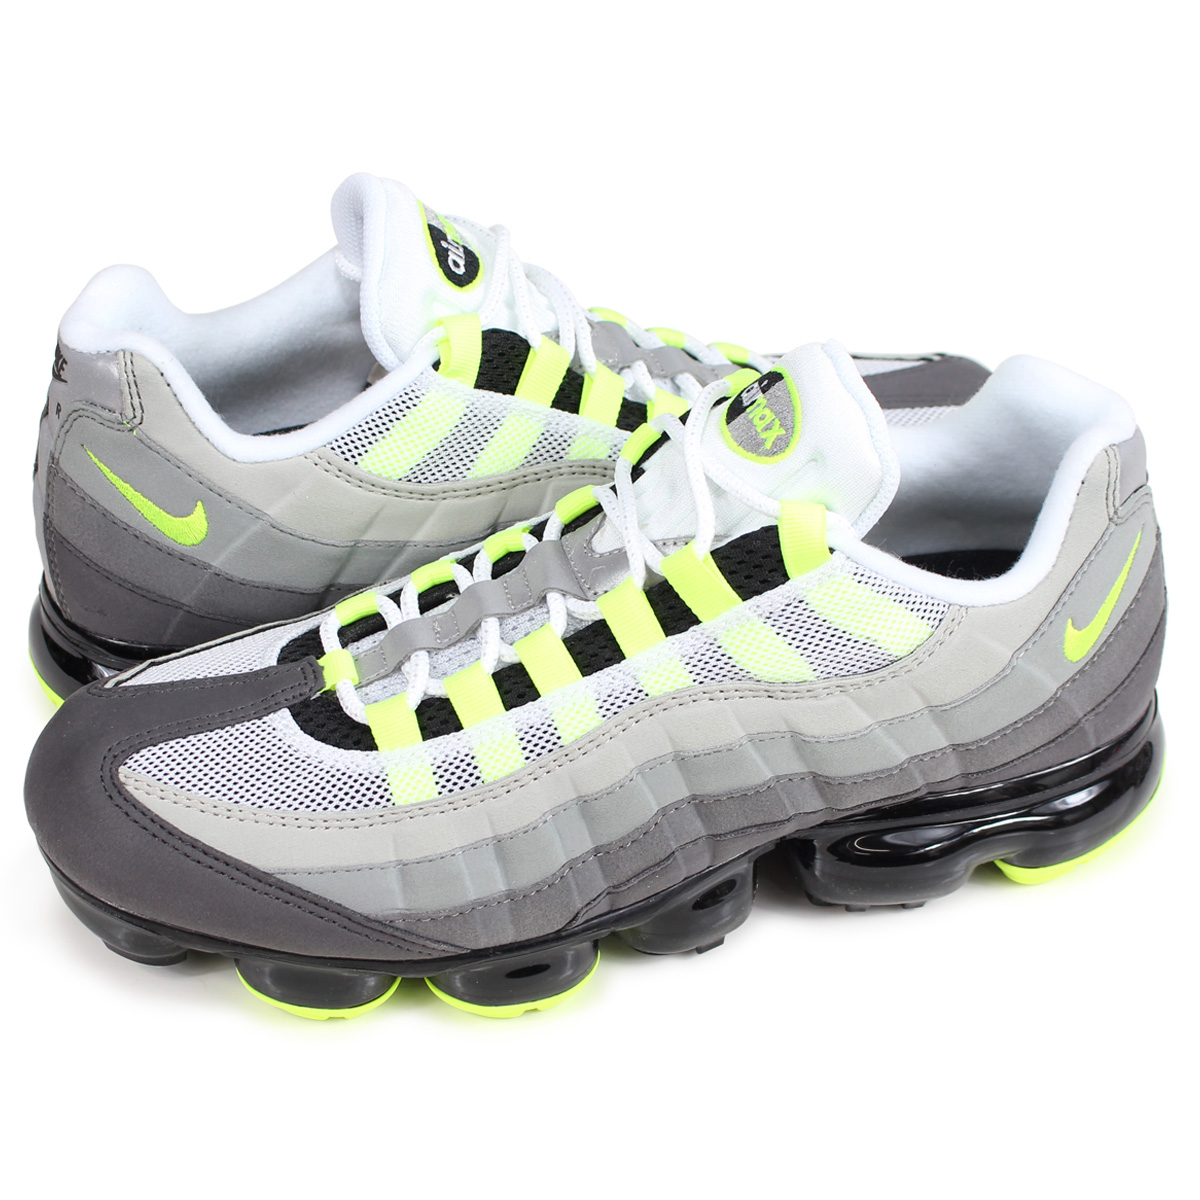 detailed look 9c297 e8c8a Nike NIKE air vapor max 95 sneakers men AIR VAPORMAX 95 NEON AJ7292-001  neon yellow  the load planned additional arrival in reservation product  5 16 ...